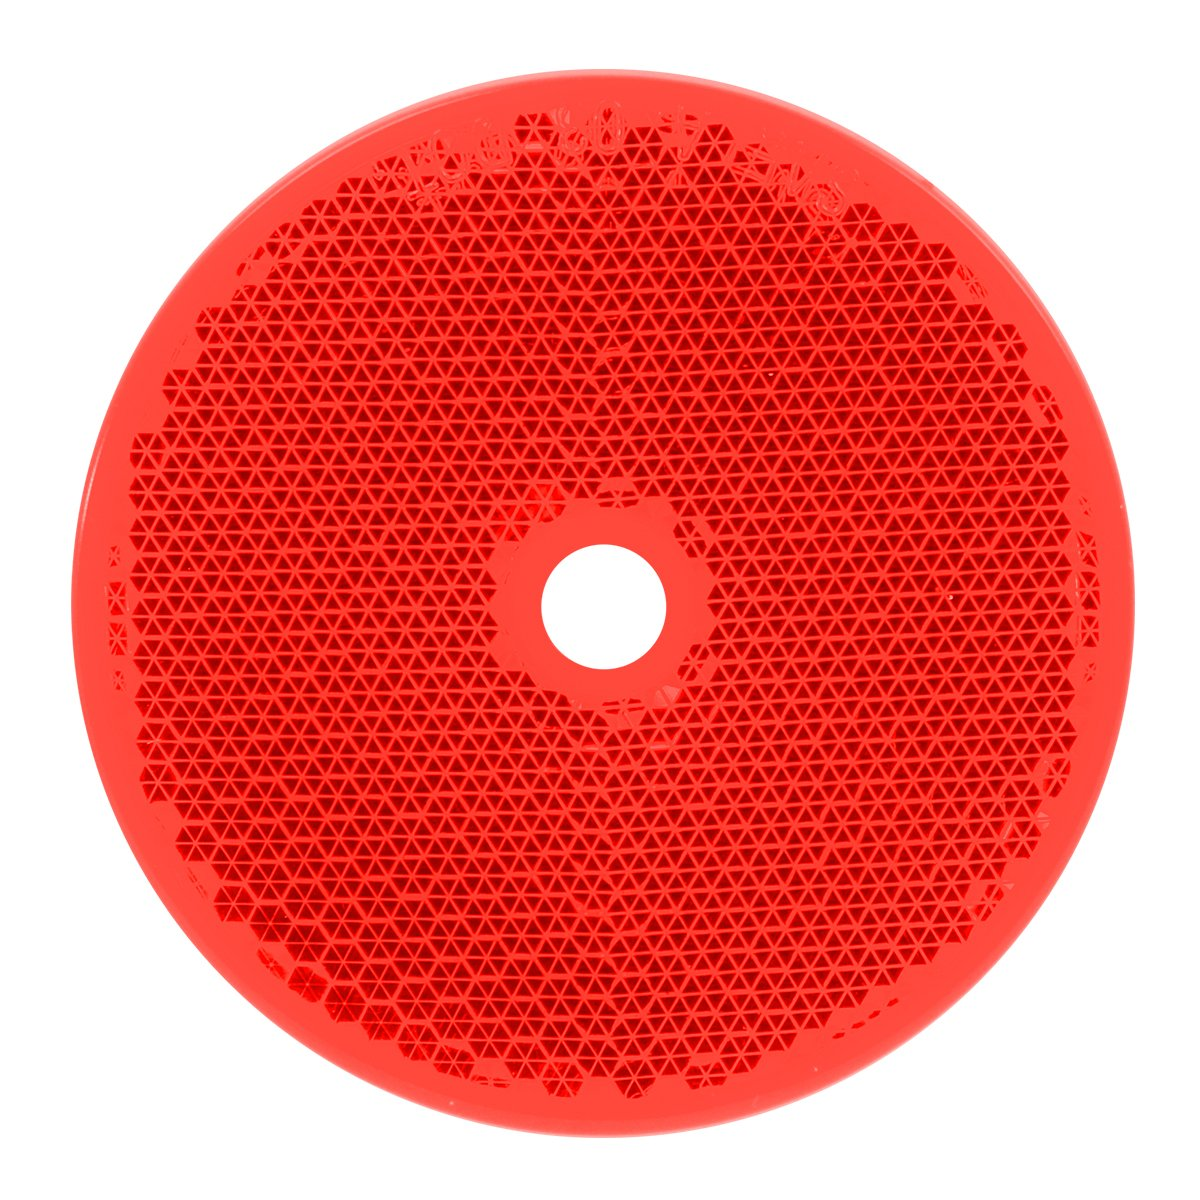 """Grand General 80824 Round Red 3-1//4/"""" Reflector with Center Mounting Hole for Trucks Towing Trailers RVs and Buses 1 Pack"""